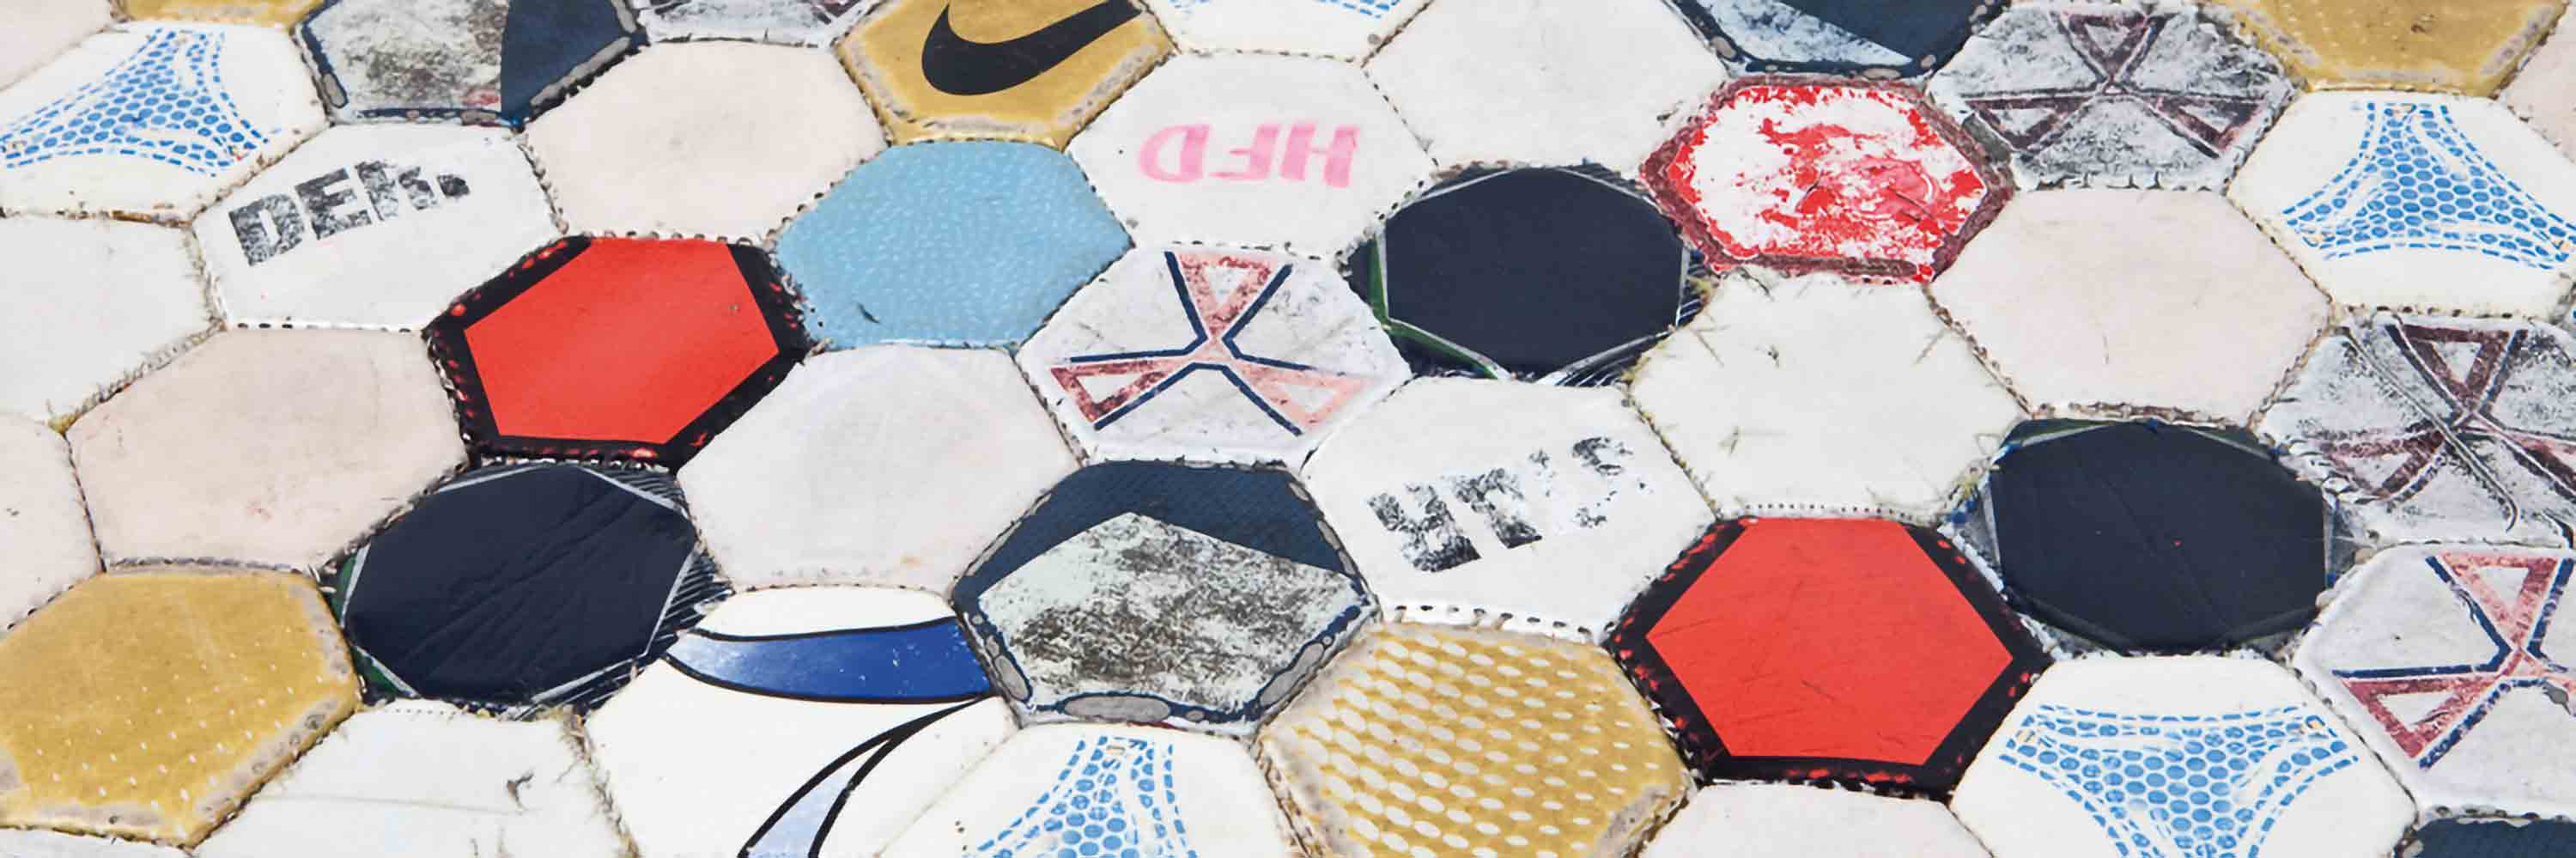 DEU-Janina-Stübler-football-carpet-detail